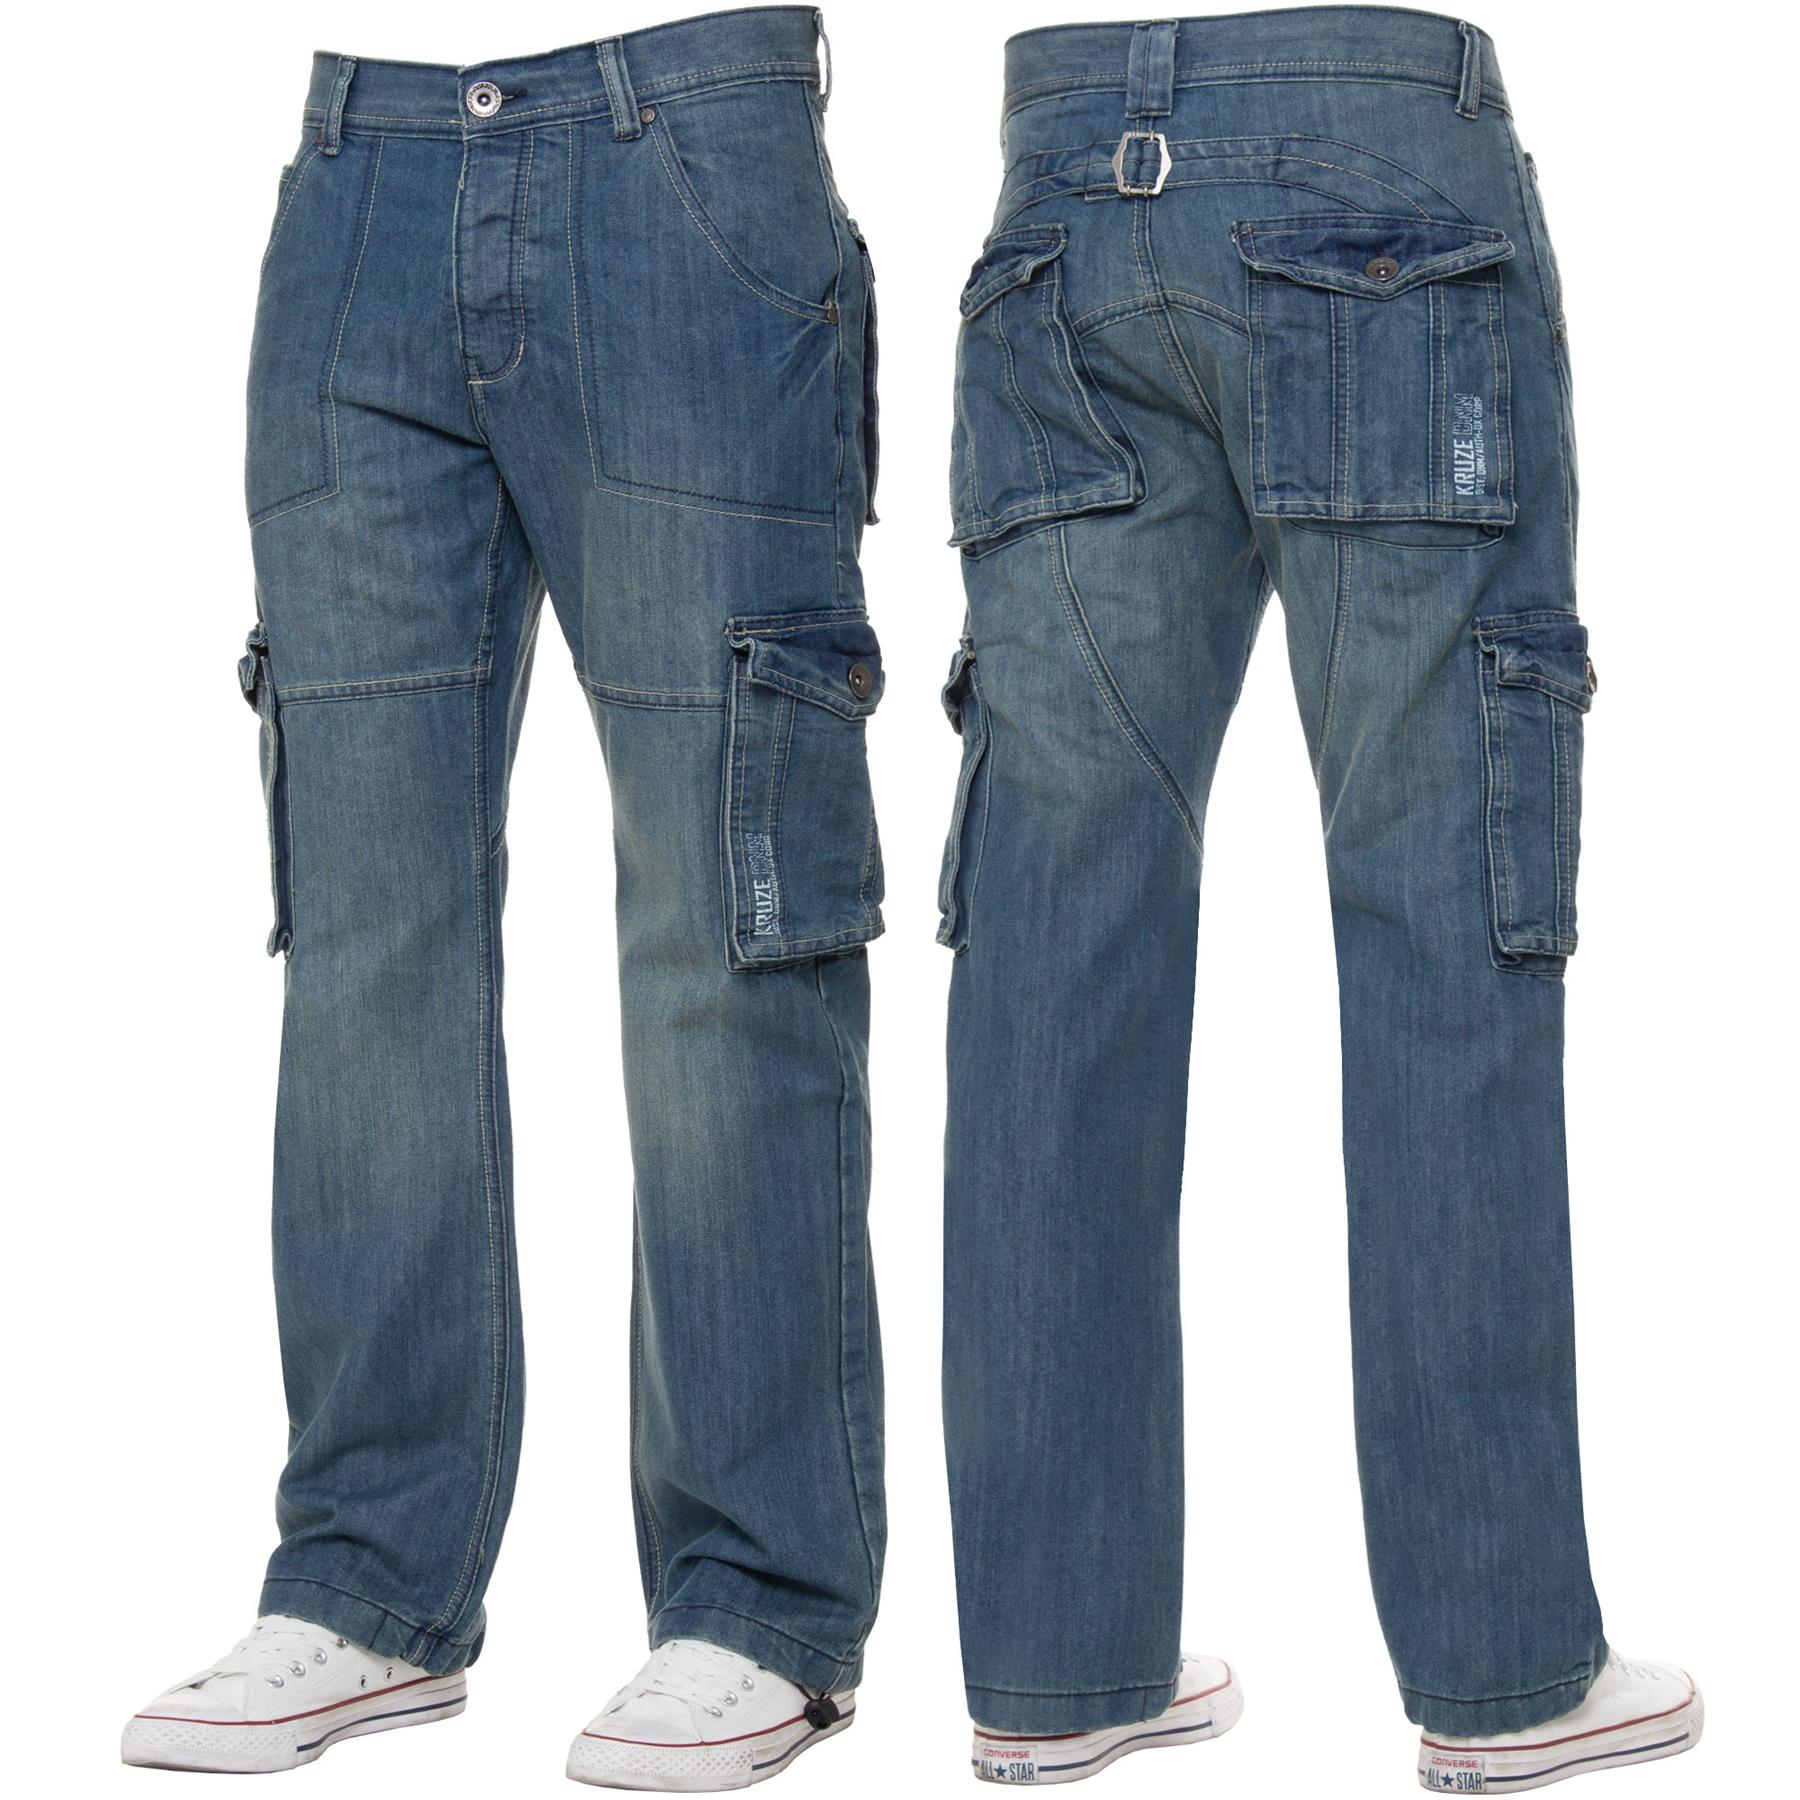 Kruze-Mens-Cargo-Combat-Jeans-Casual-Work-Denim-Pants-Big-Tall-All-Waist-Sizes thumbnail 3